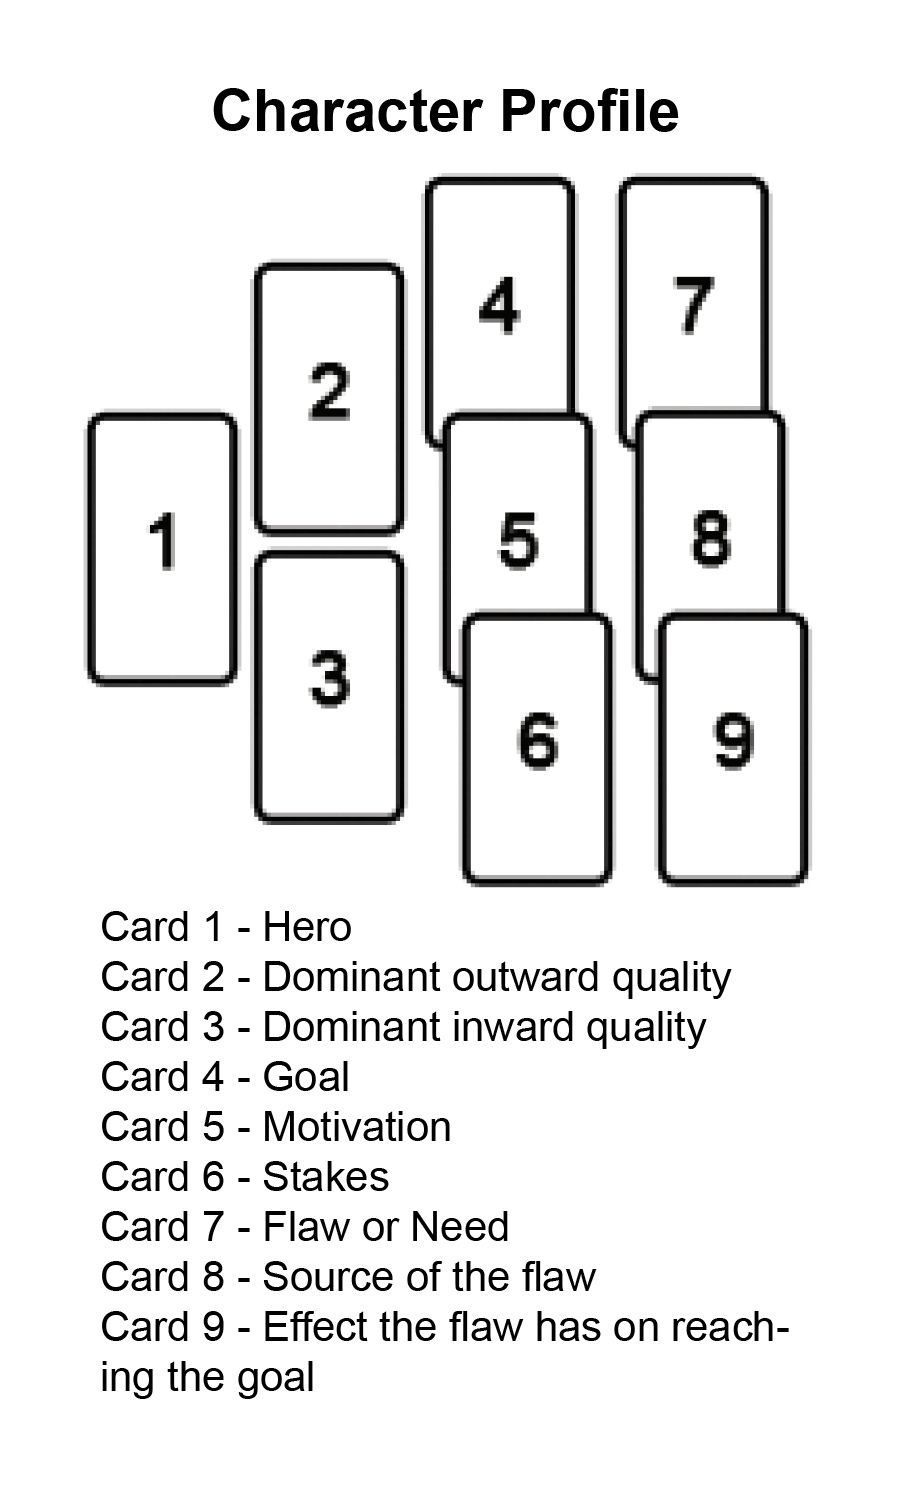 a writer s storyboards card character profile oh my gosh tho i a writer s storyboards card character profile oh my gosh tho i can do this